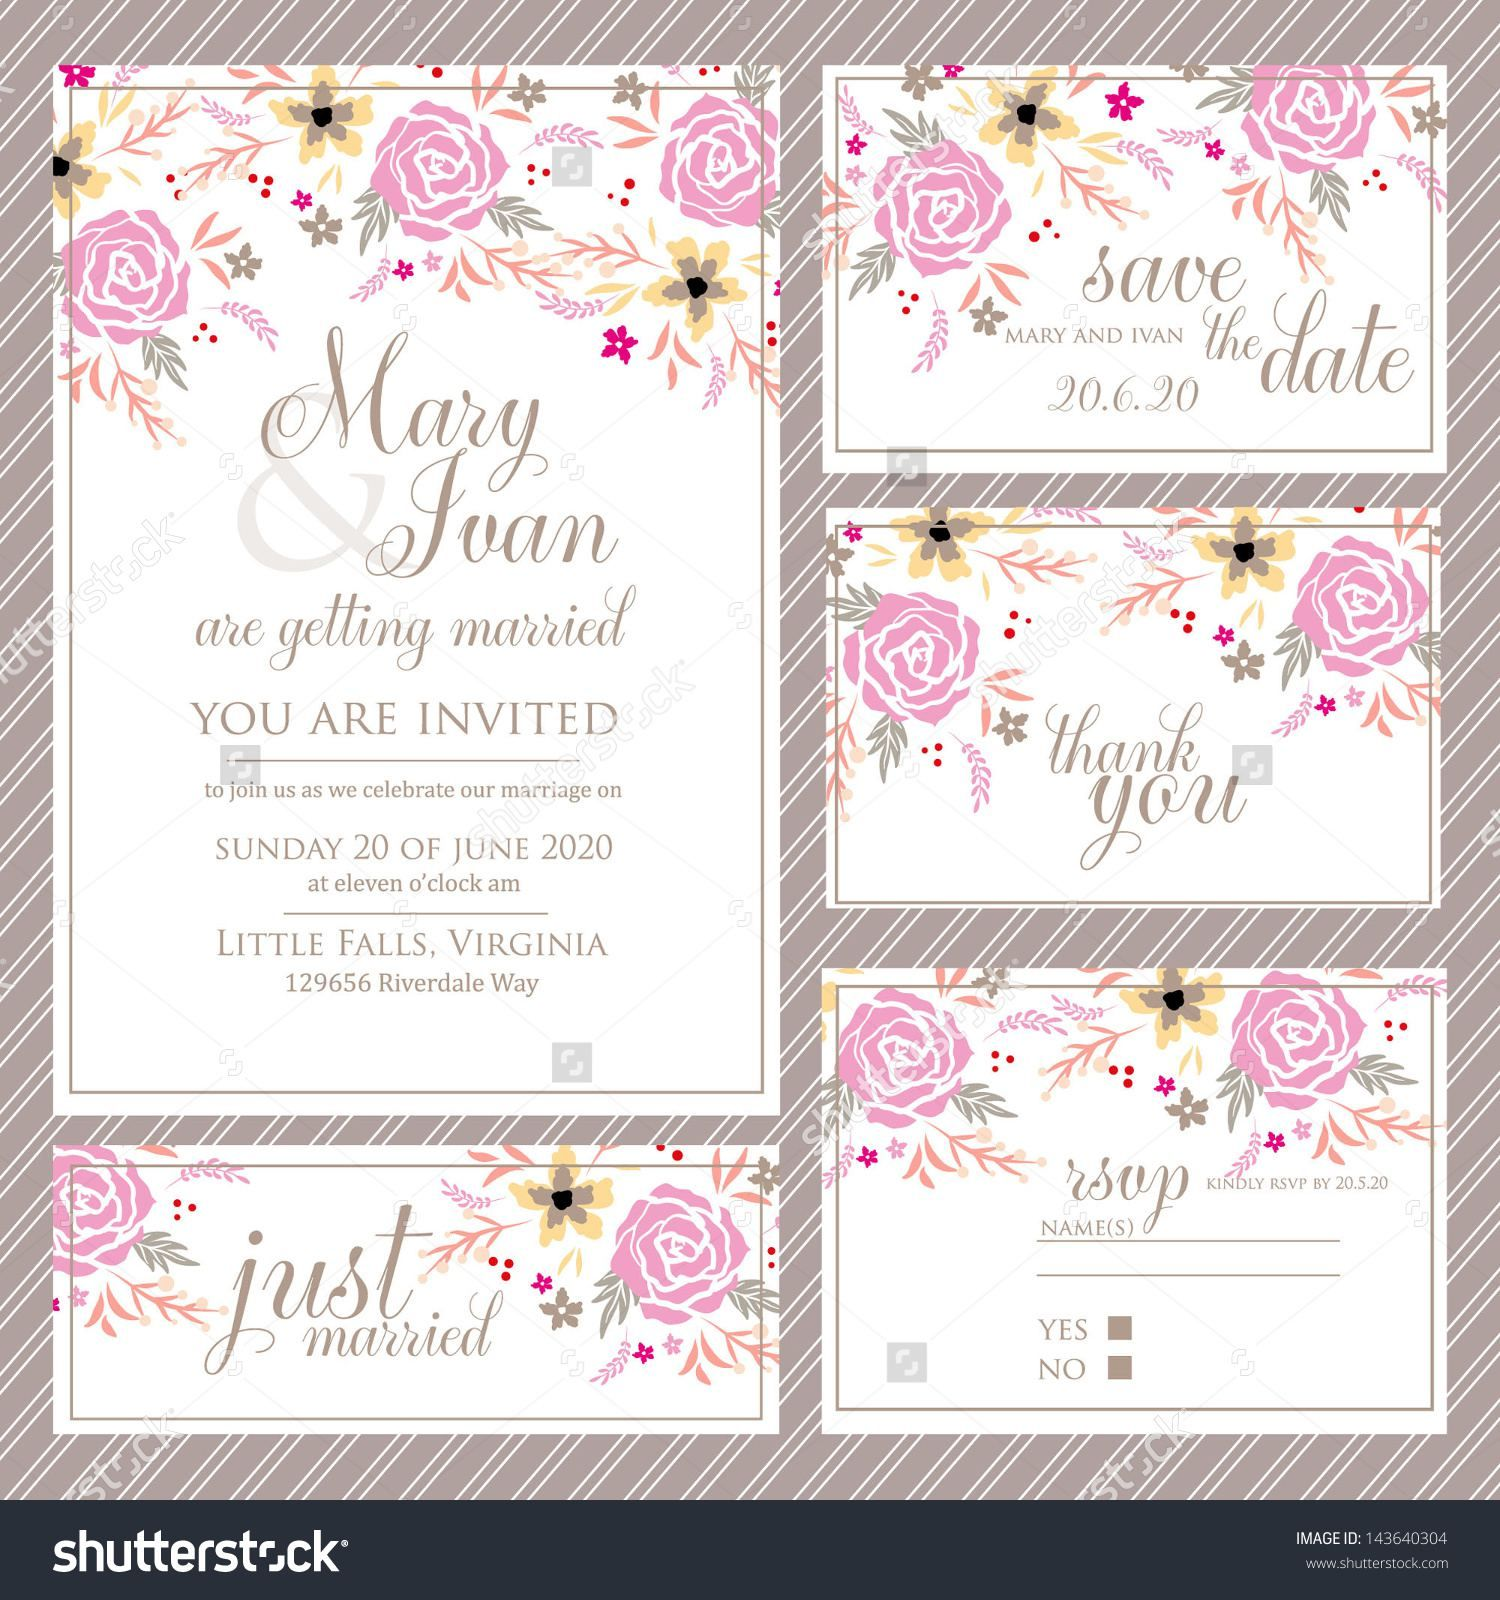 Wedding Invitations And Rsvp Cards Package Choice Image Wedding